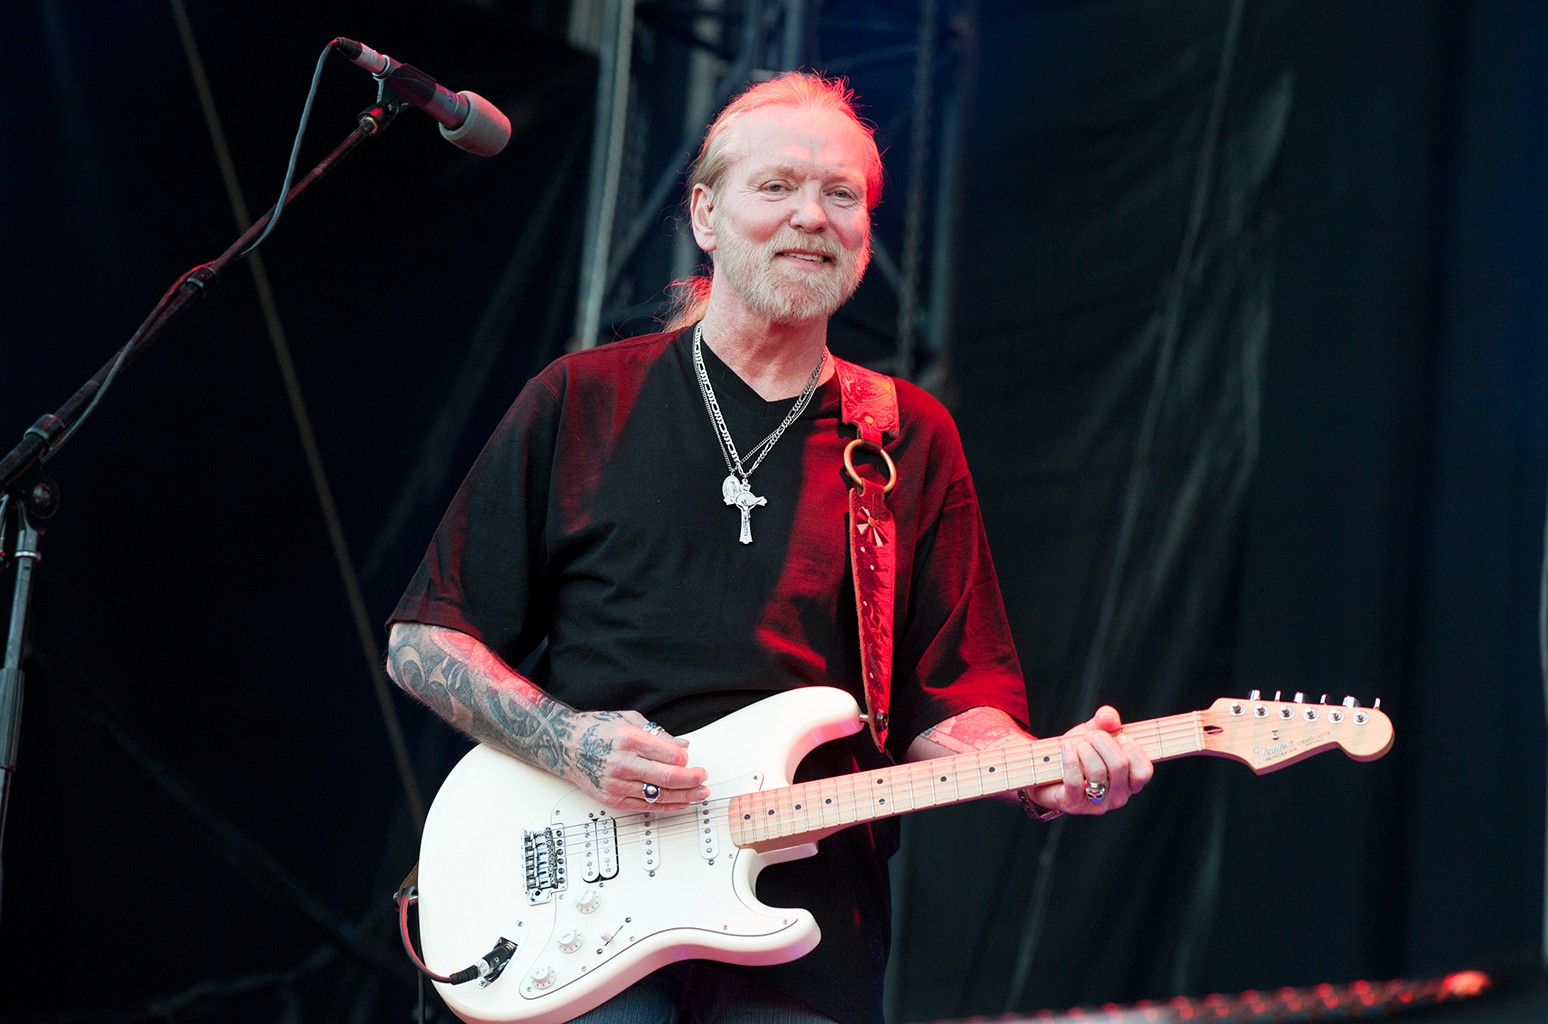 Gregg Allman performs on stage on the third day of Azkena Rock Festival at Recinto Mendizabala on June 25, 2011 in Vitoria-Gasteiz, Spain.